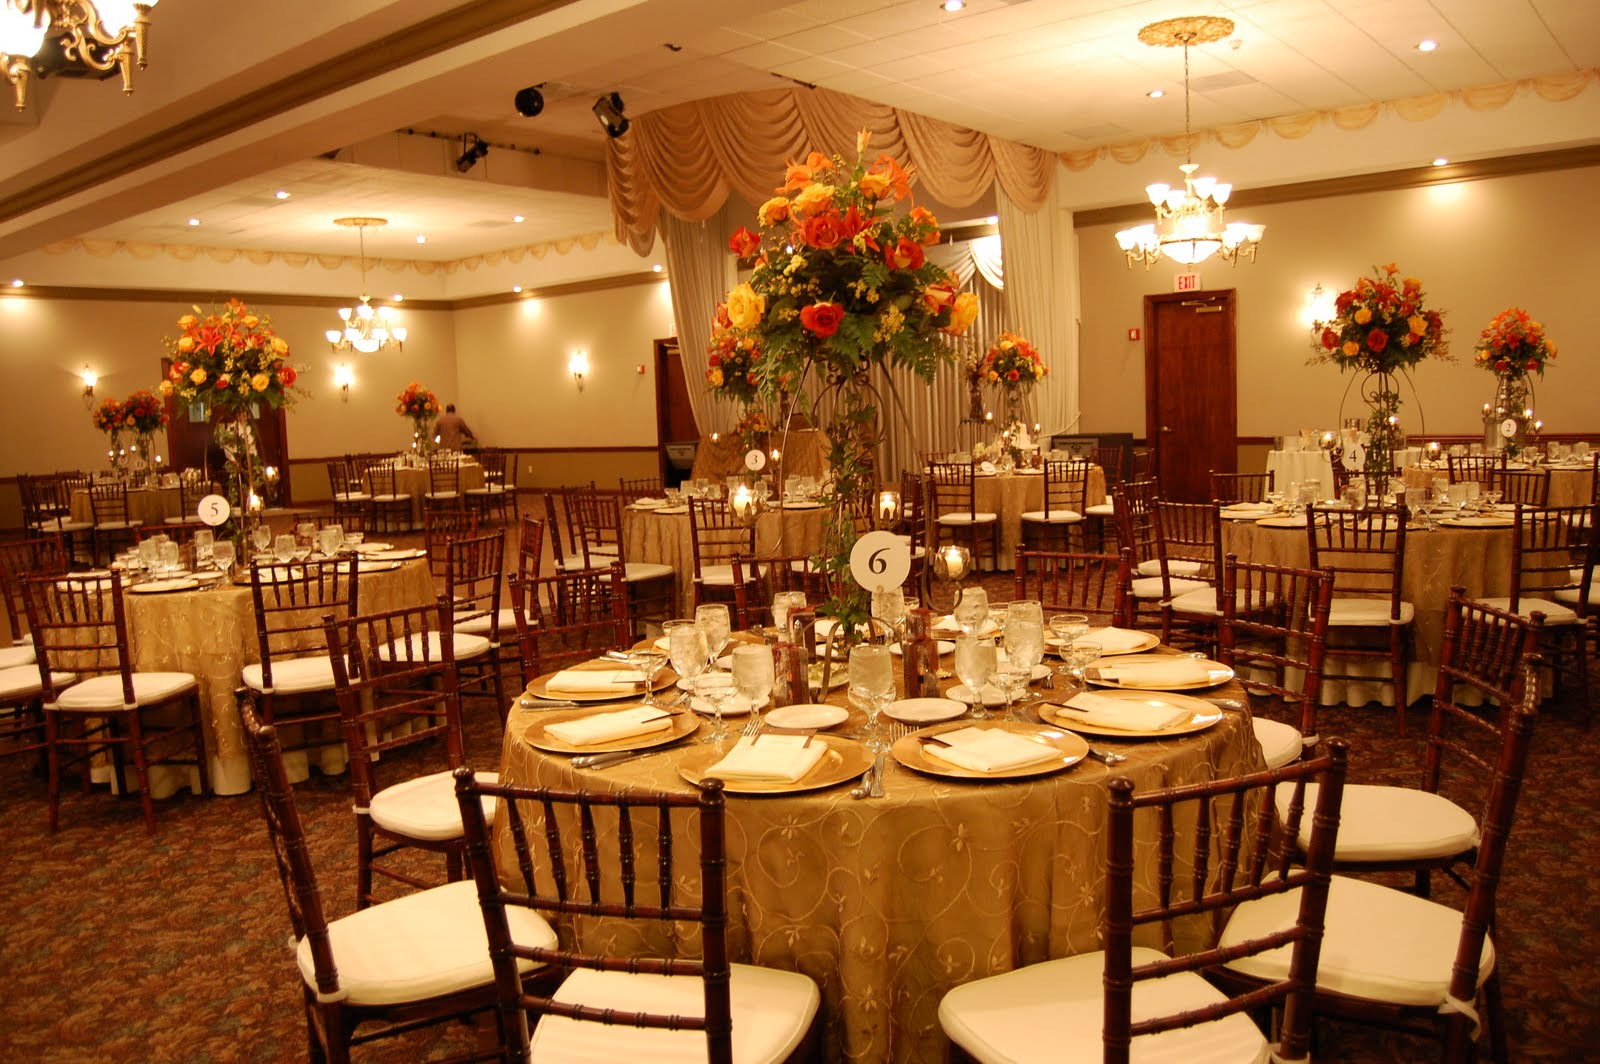 Brown And Gold Wedding Ideas: Jessica's Events : Esther & Hector's Wedding